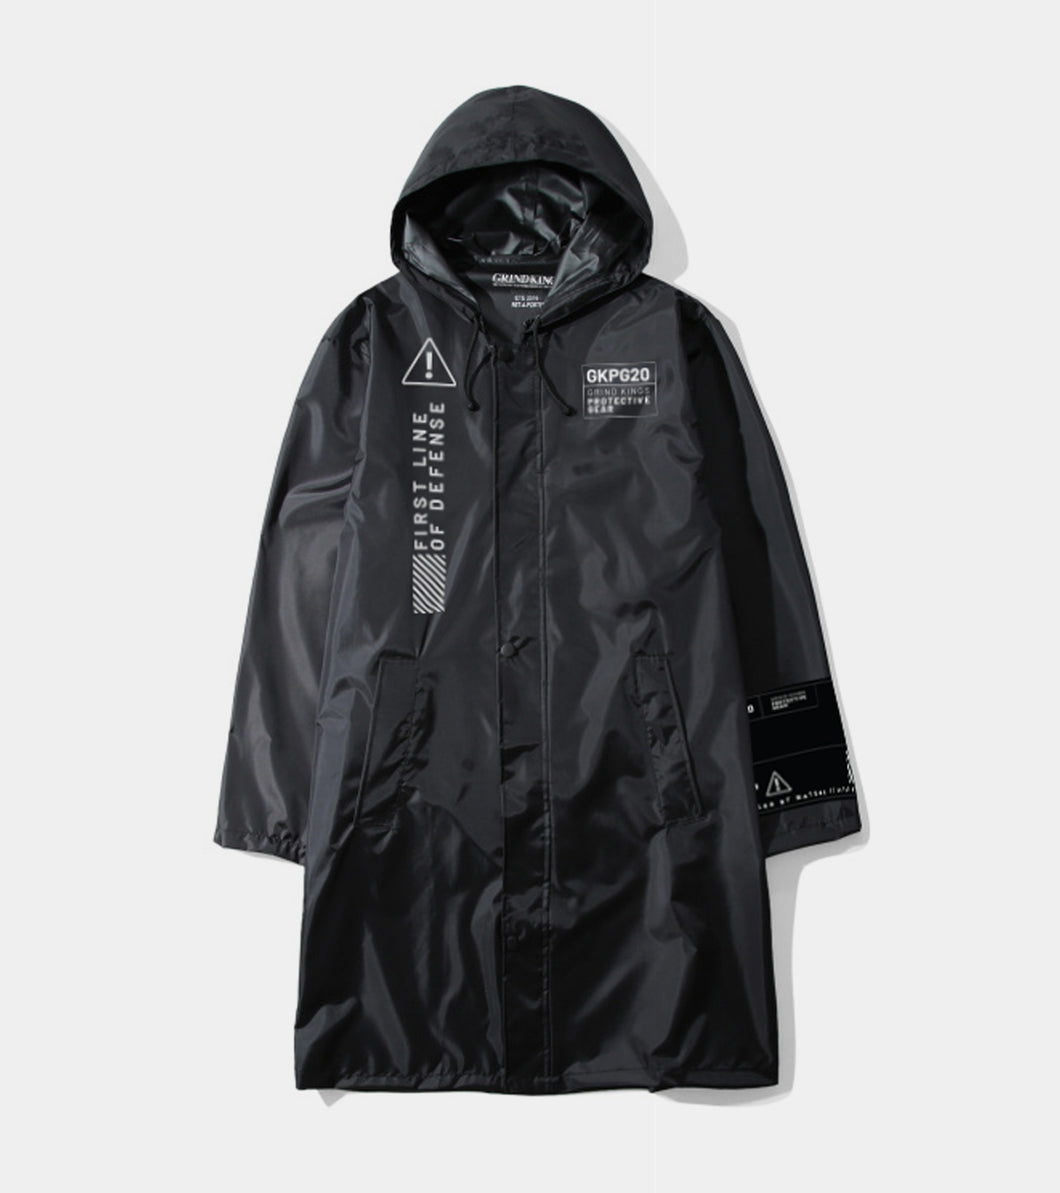 GKPG20 Logo PPE Trench - Black